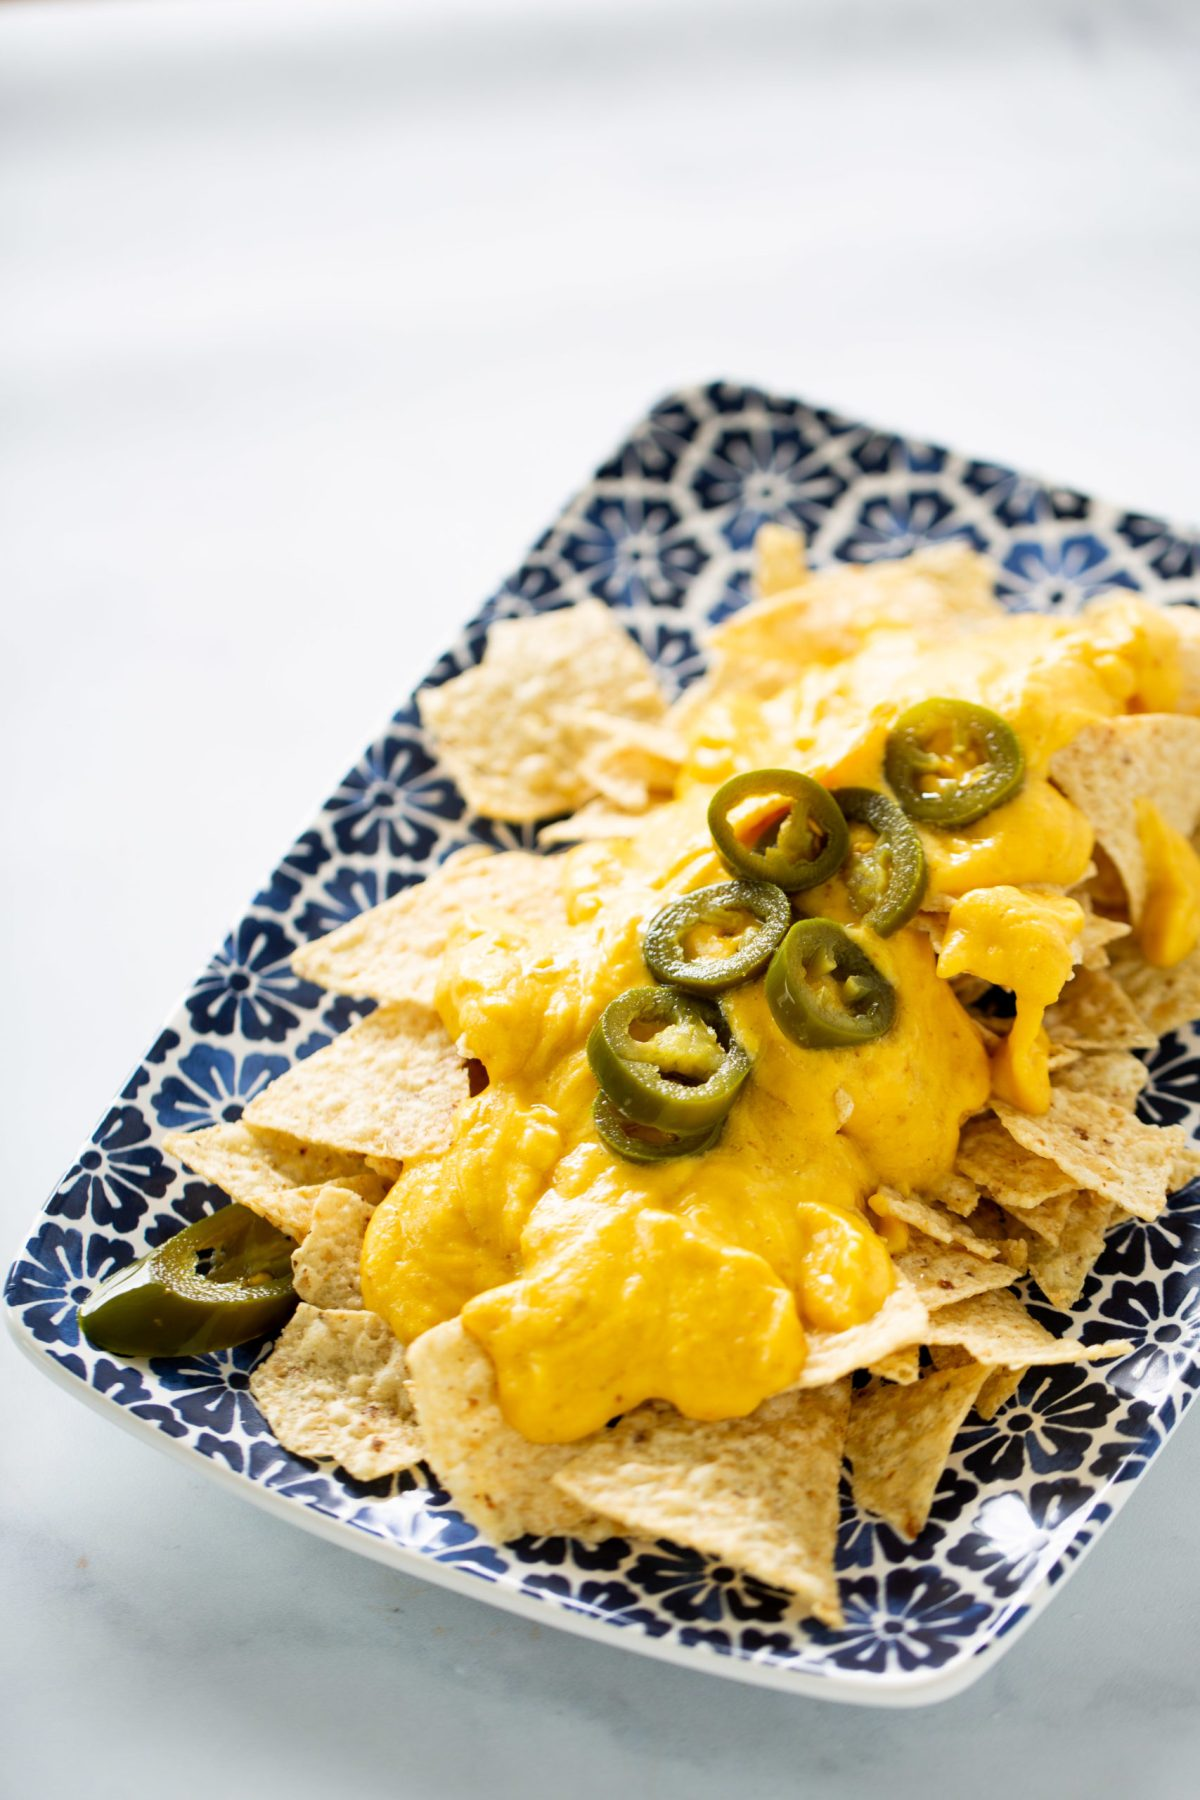 VEgan Queso with nachos and jalapeño slices